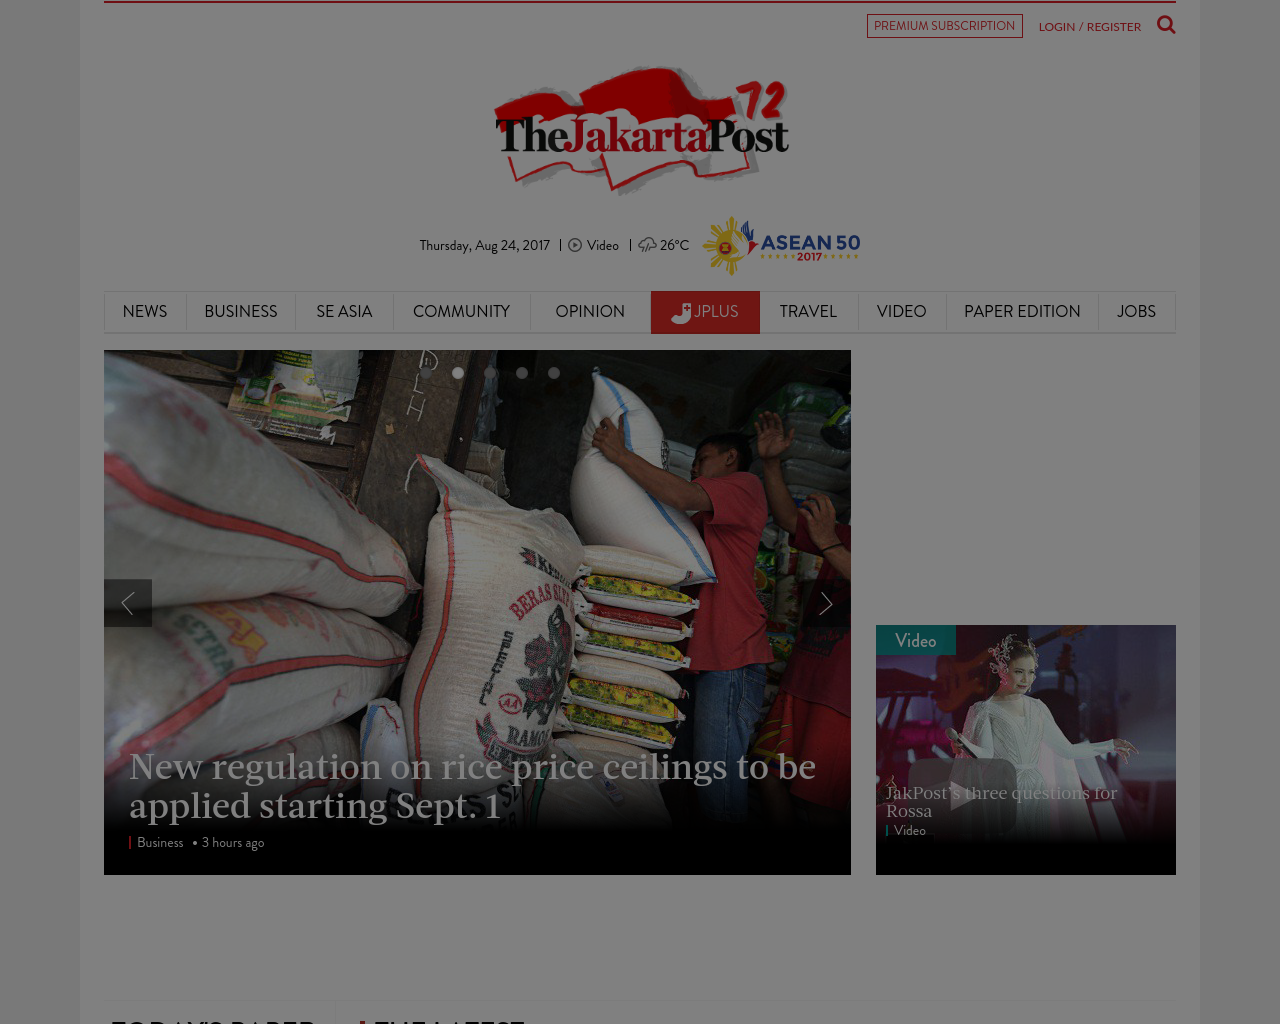 The-Jakarta-Post-Advertising-Reviews-Pricing